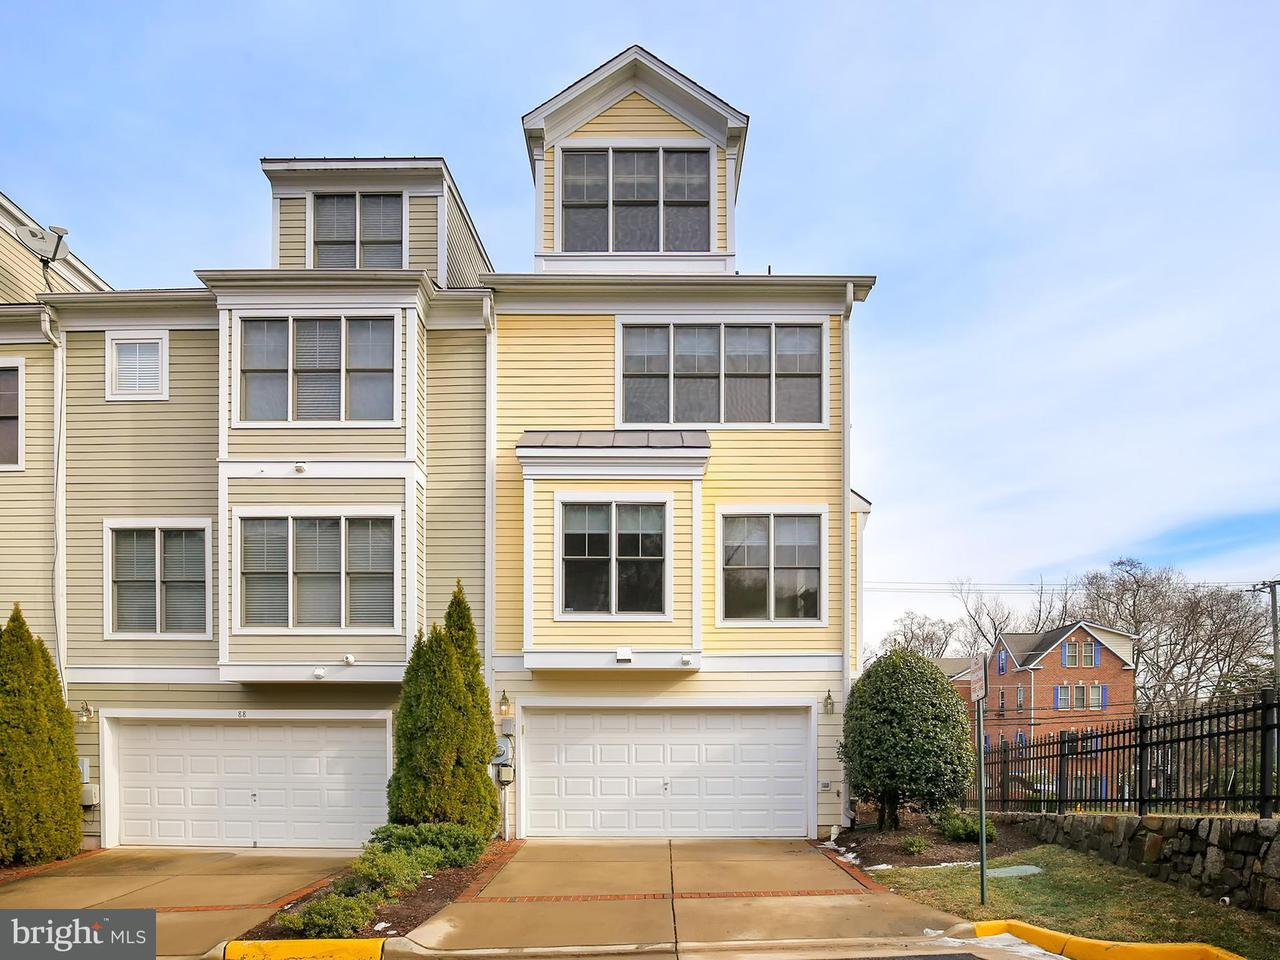 Casa unifamiliar adosada (Townhouse) por un Venta en 86 Washington Street 86 Washington Street Occoquan, Virginia 22125 Estados Unidos